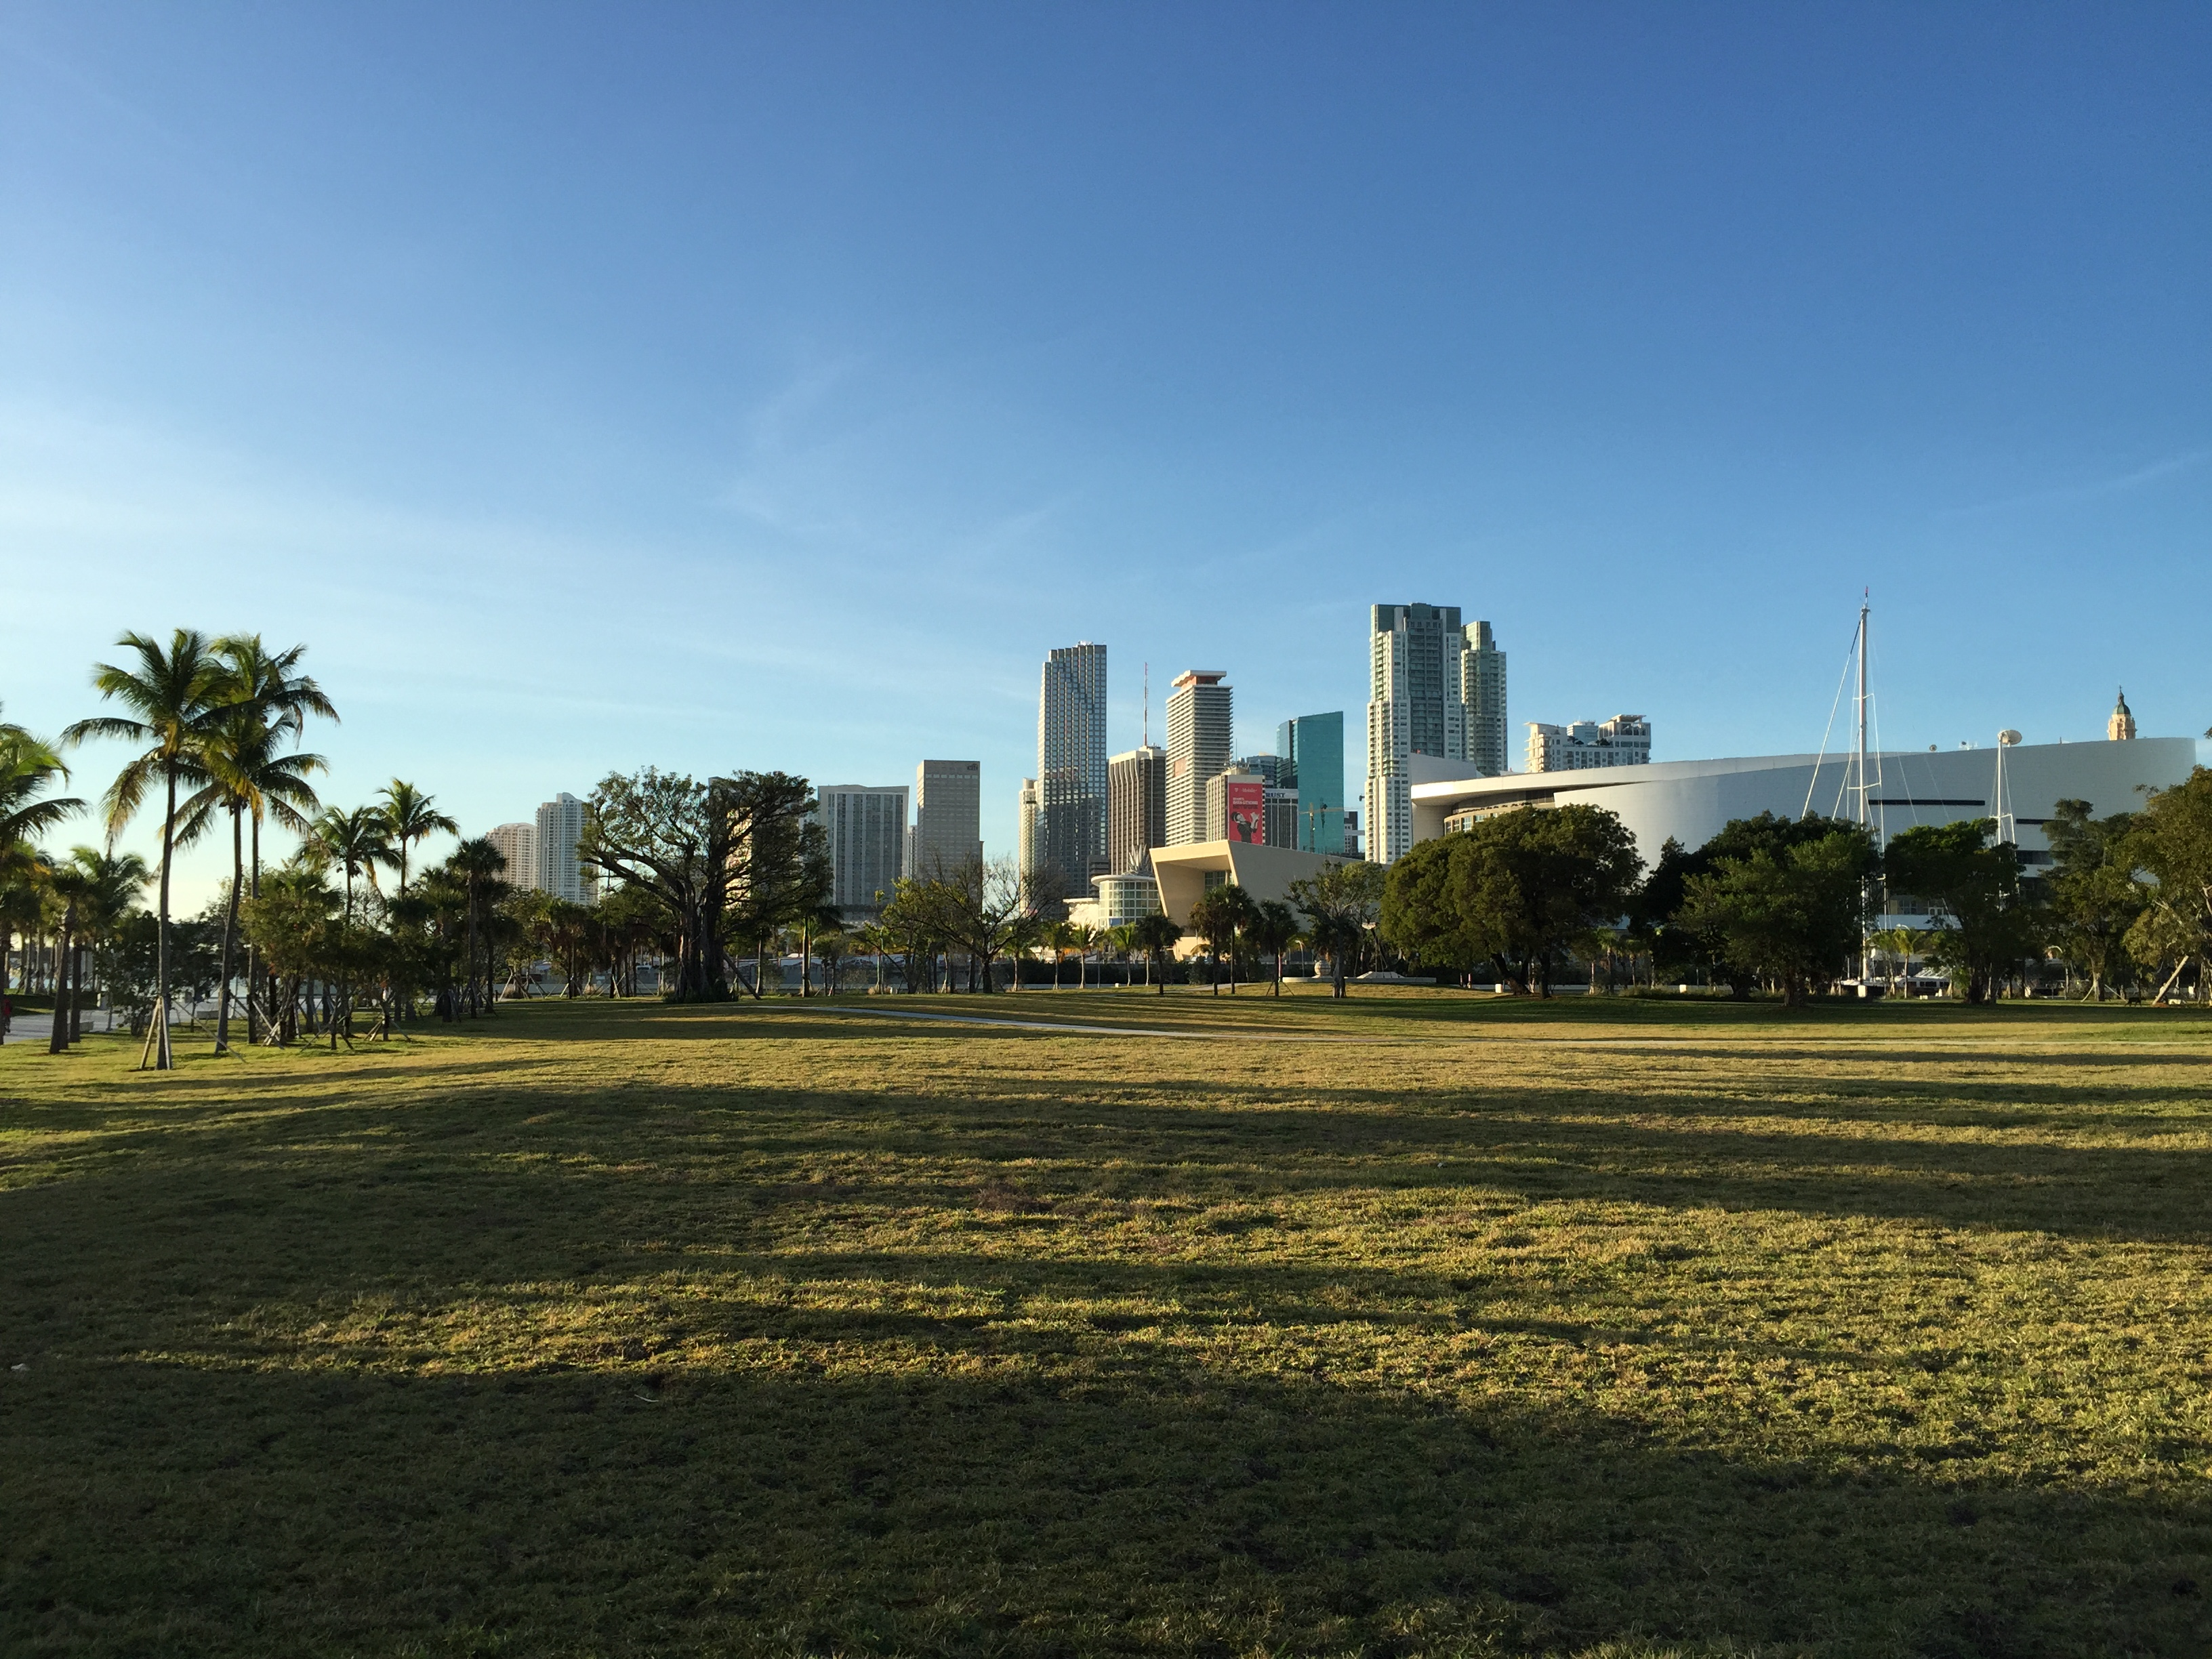 Great shots of the Miami skyline from the park